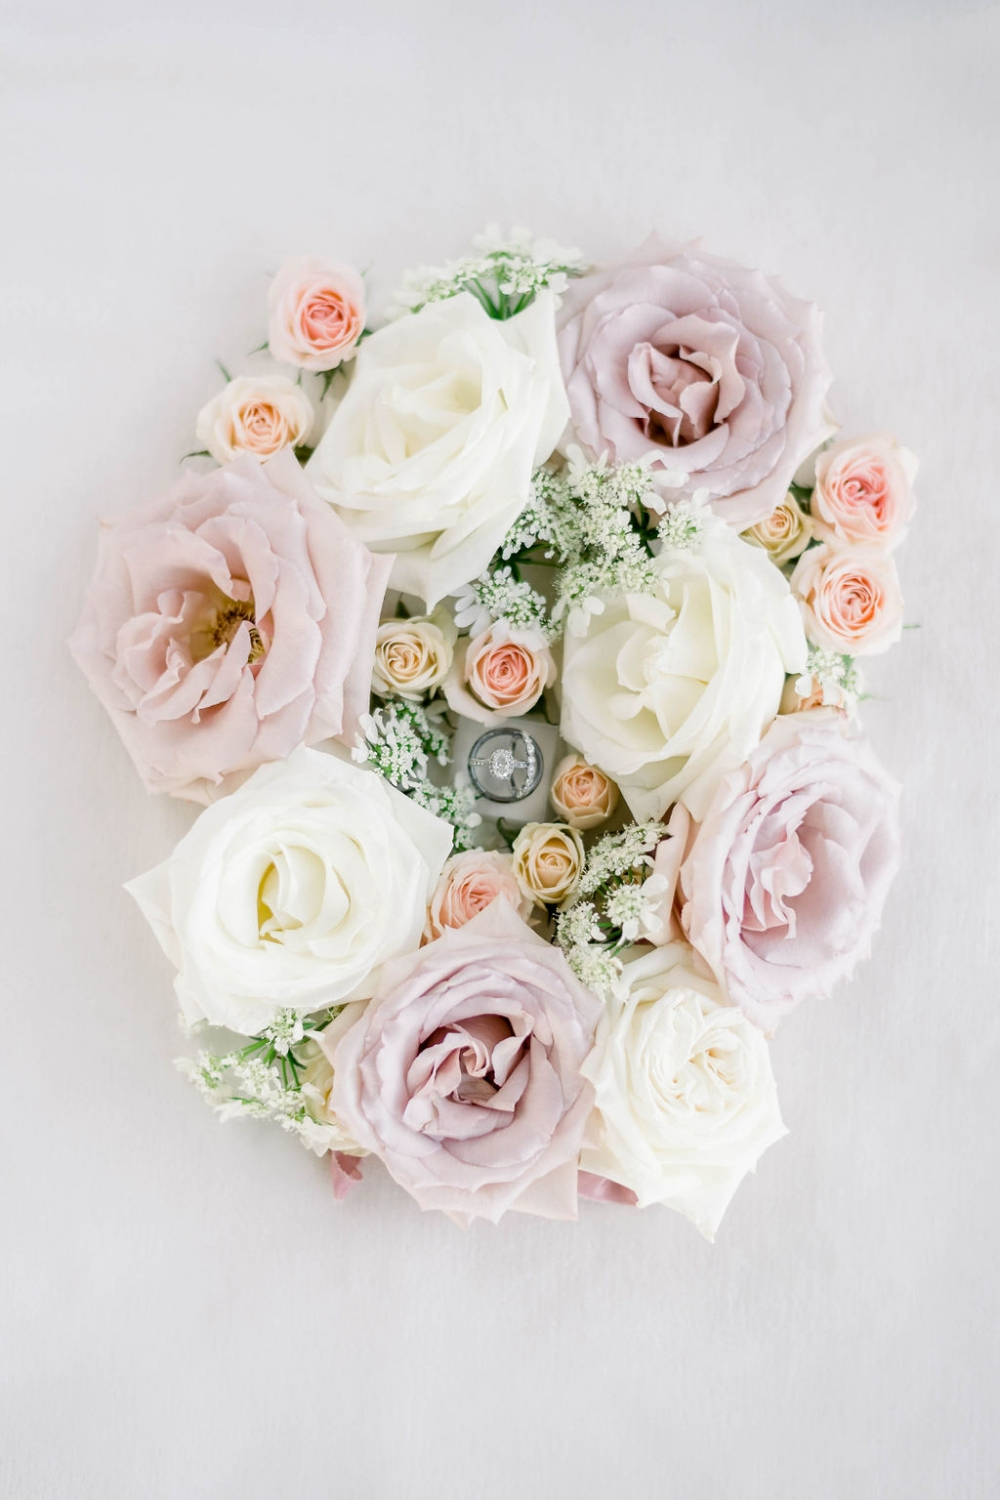 creamy white and blush roses